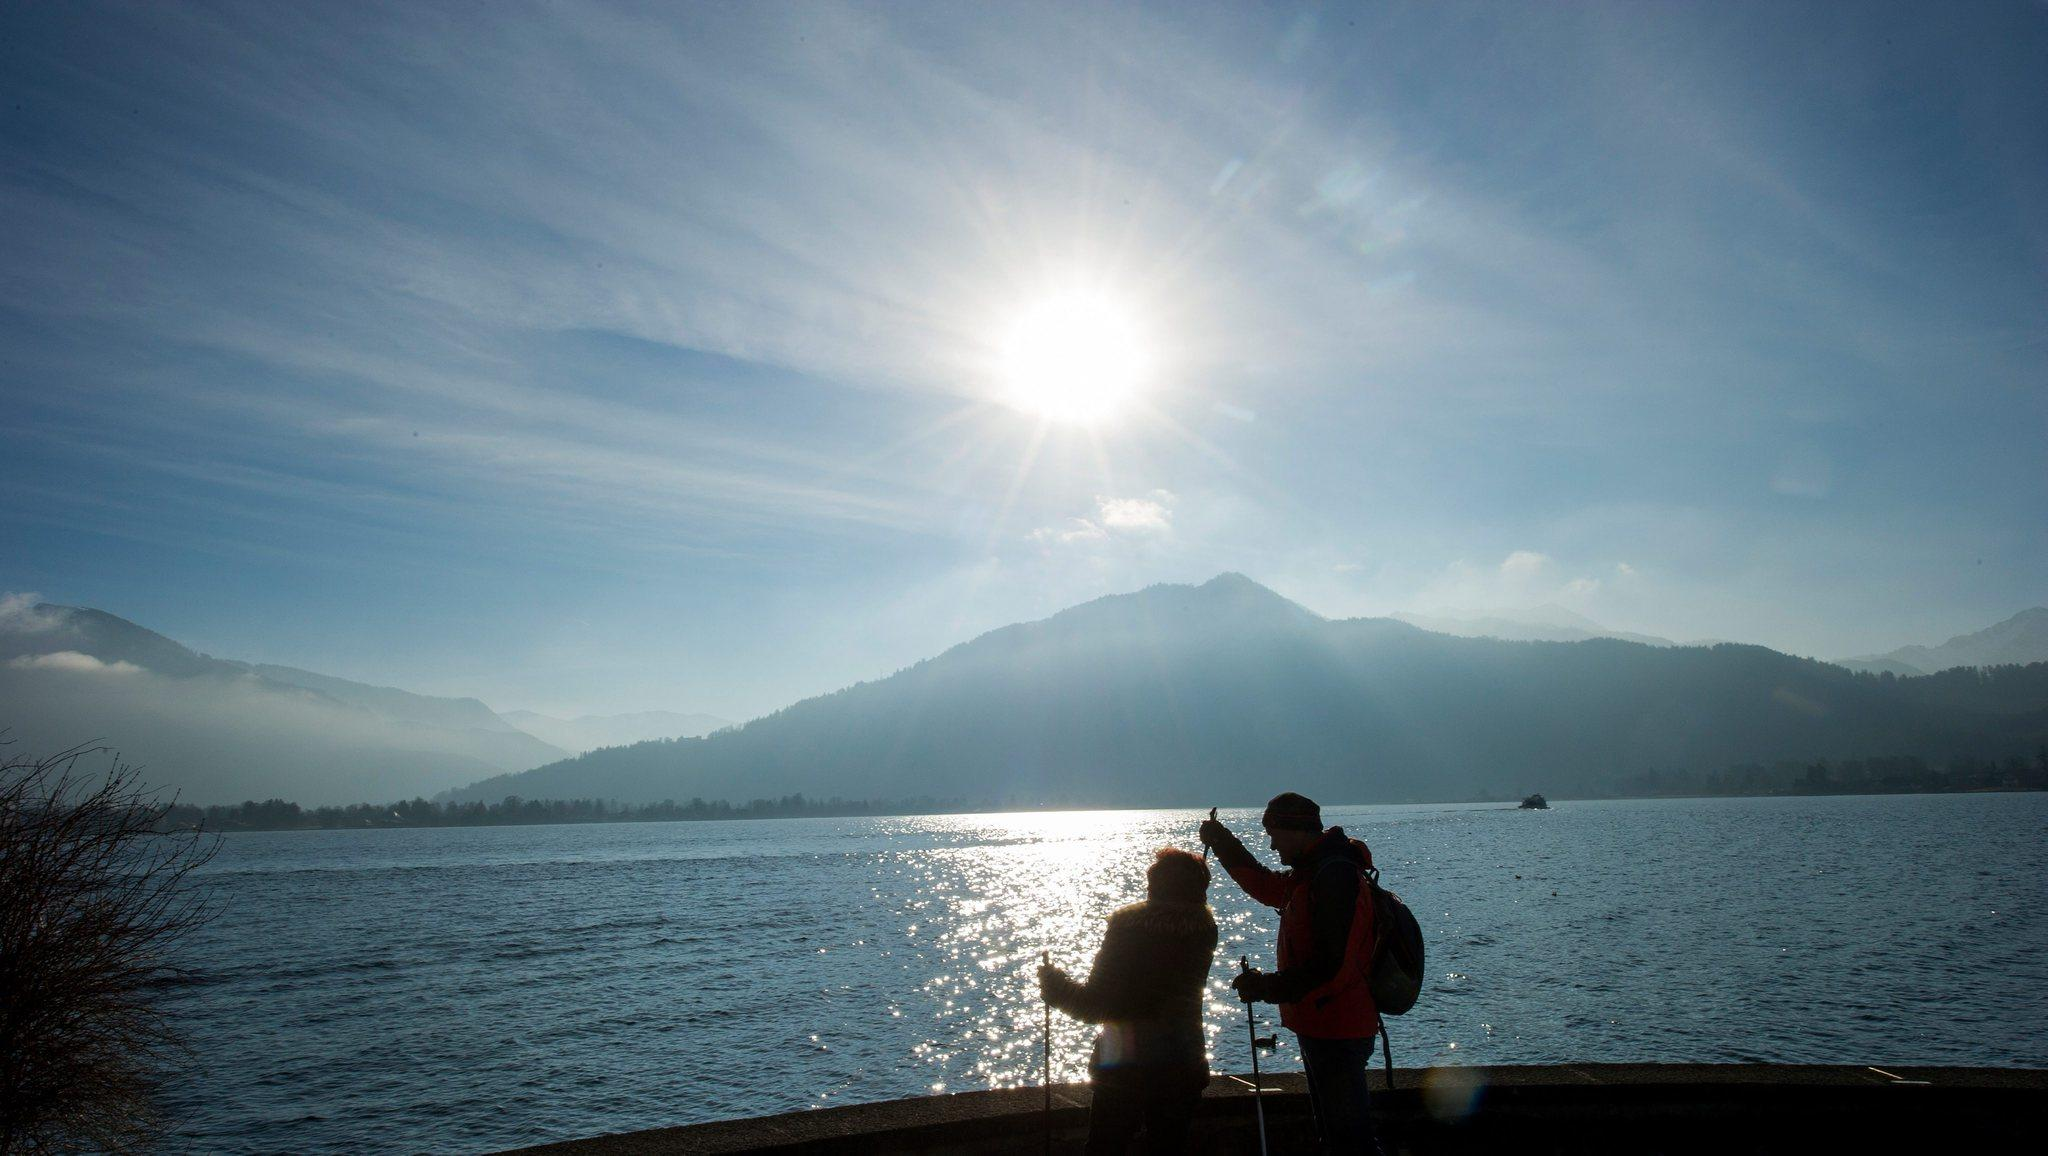 Hikers look at the mountains on the banks of Tegernsee lake in Tegernsee, Germany, 12 January 2014.